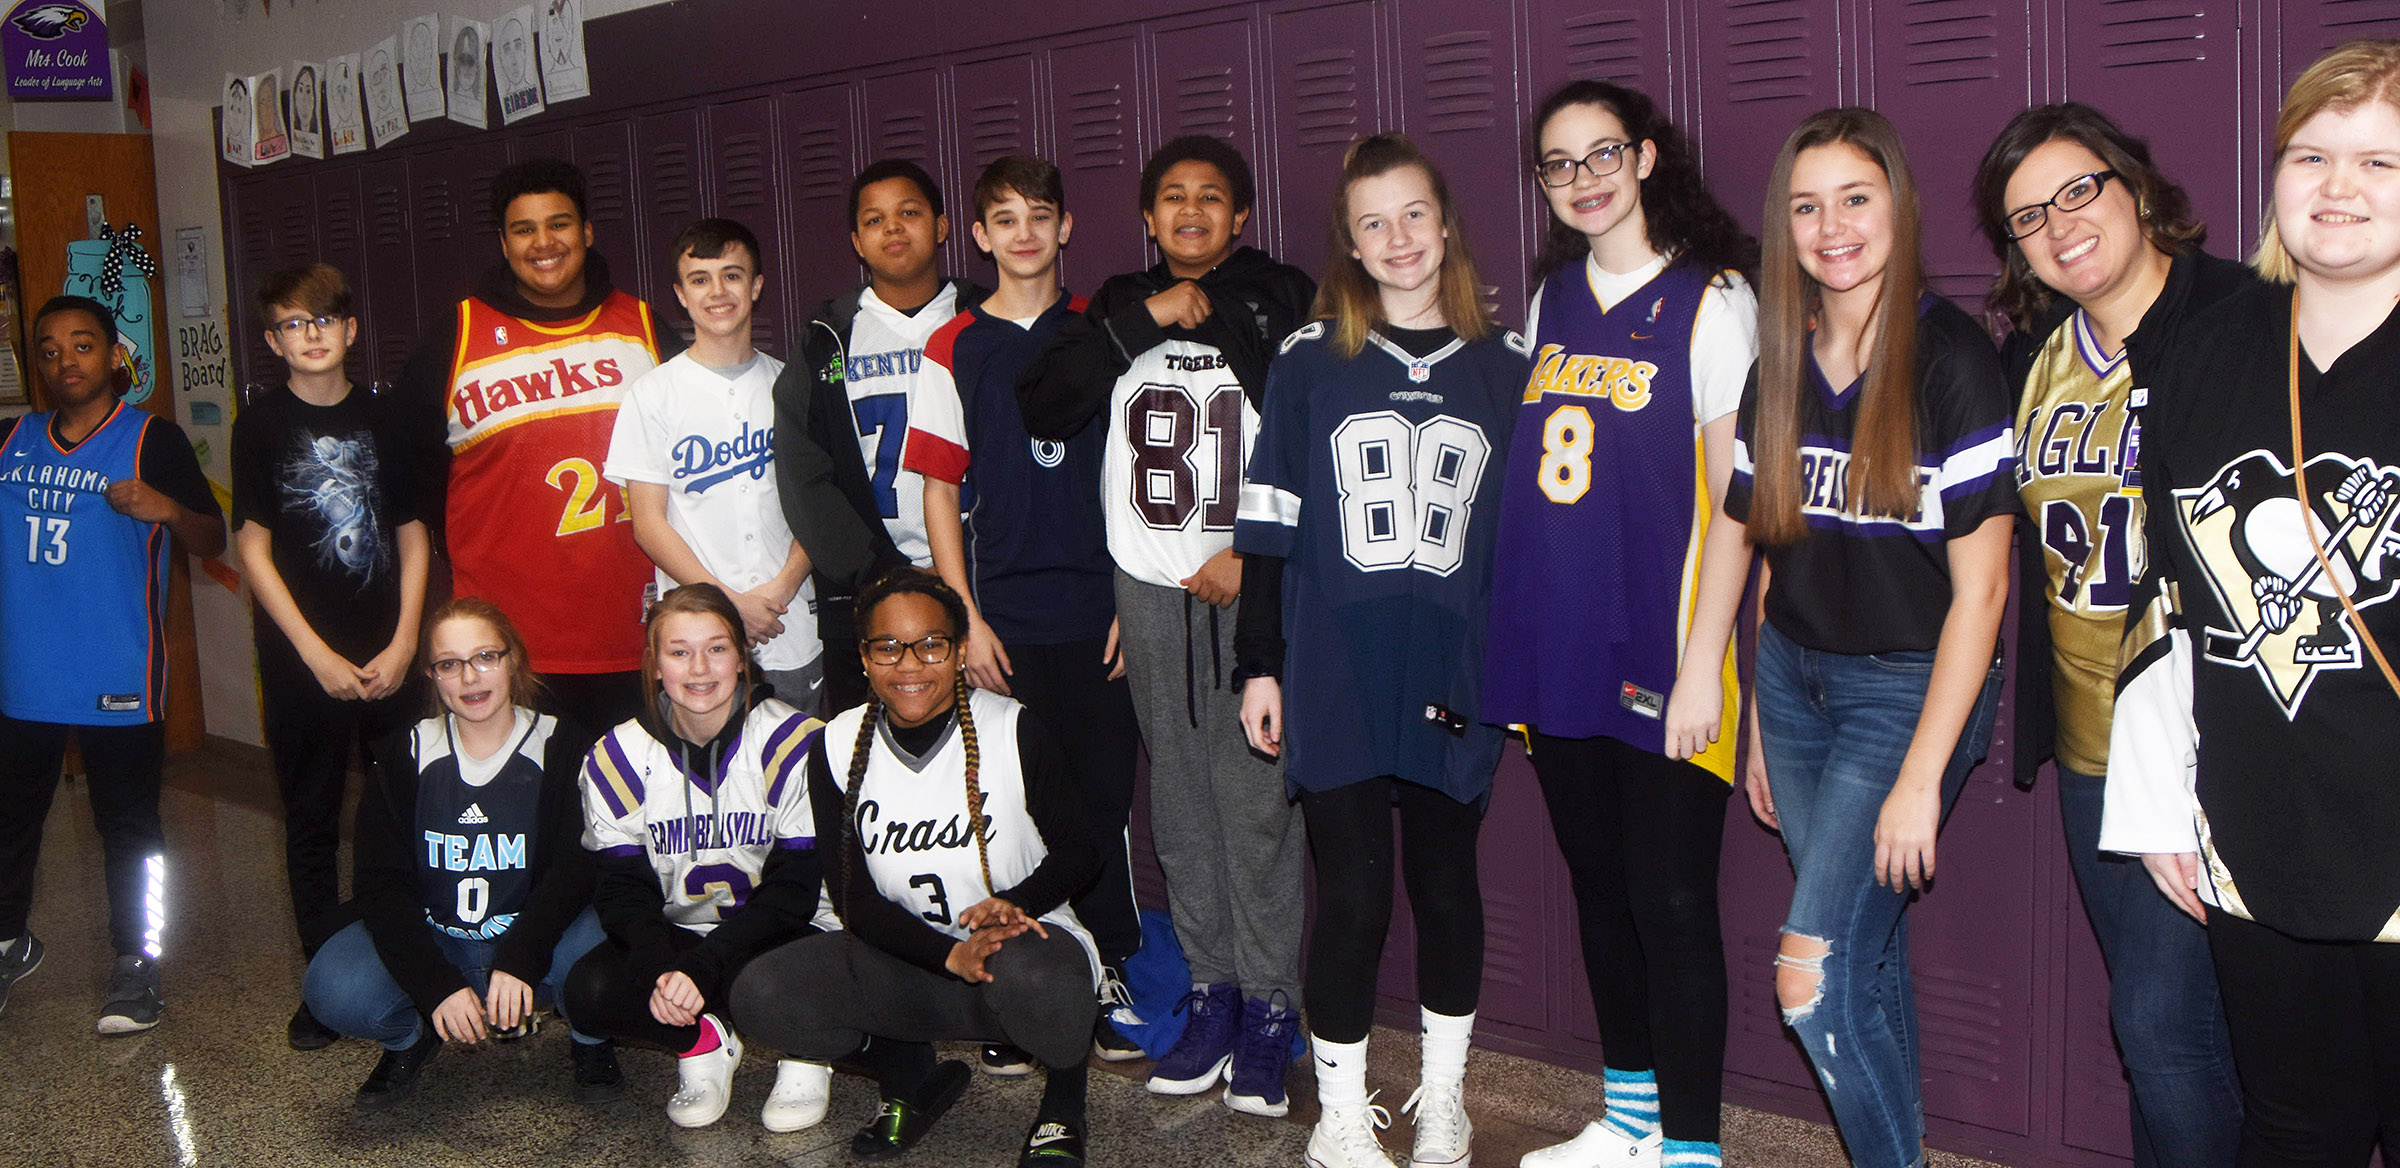 CMS students dress in jerseys for Team Thursday.